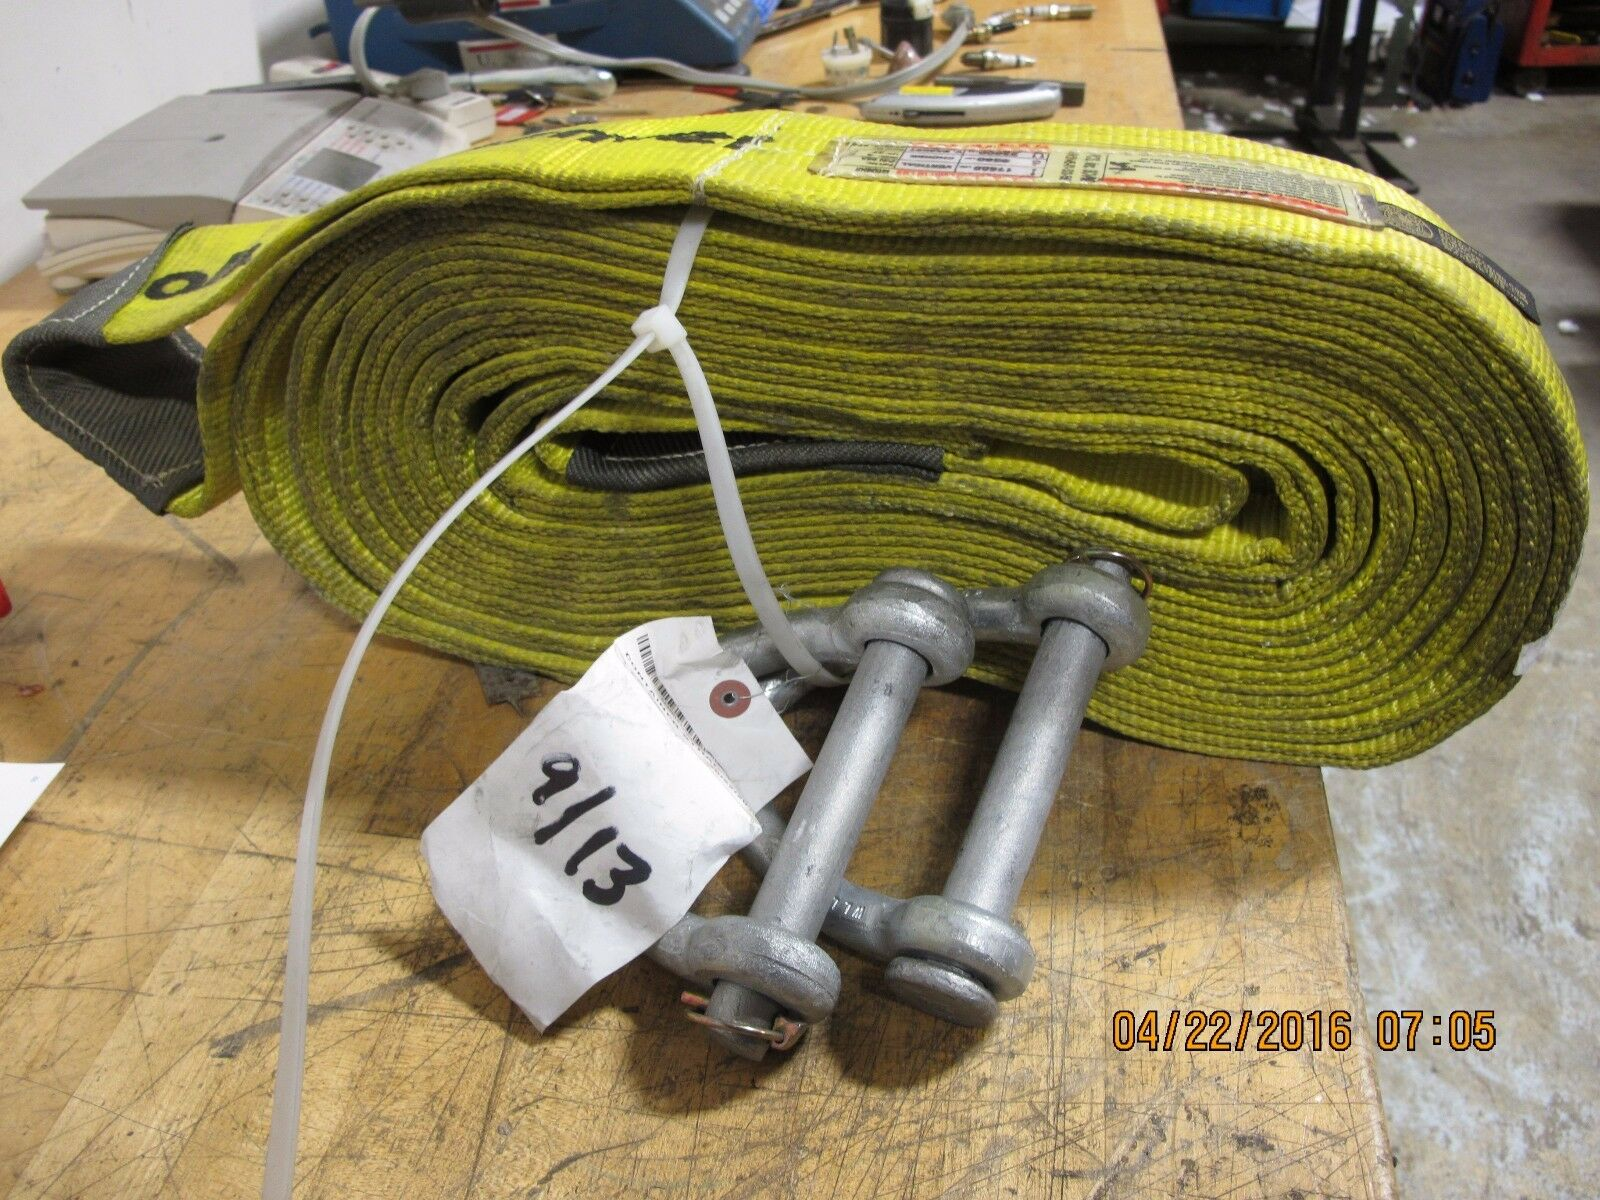 1 57m In Feet And Inches 4 2 Ply 27 Foot Nylon Lift Sling Choker Recovery Strap